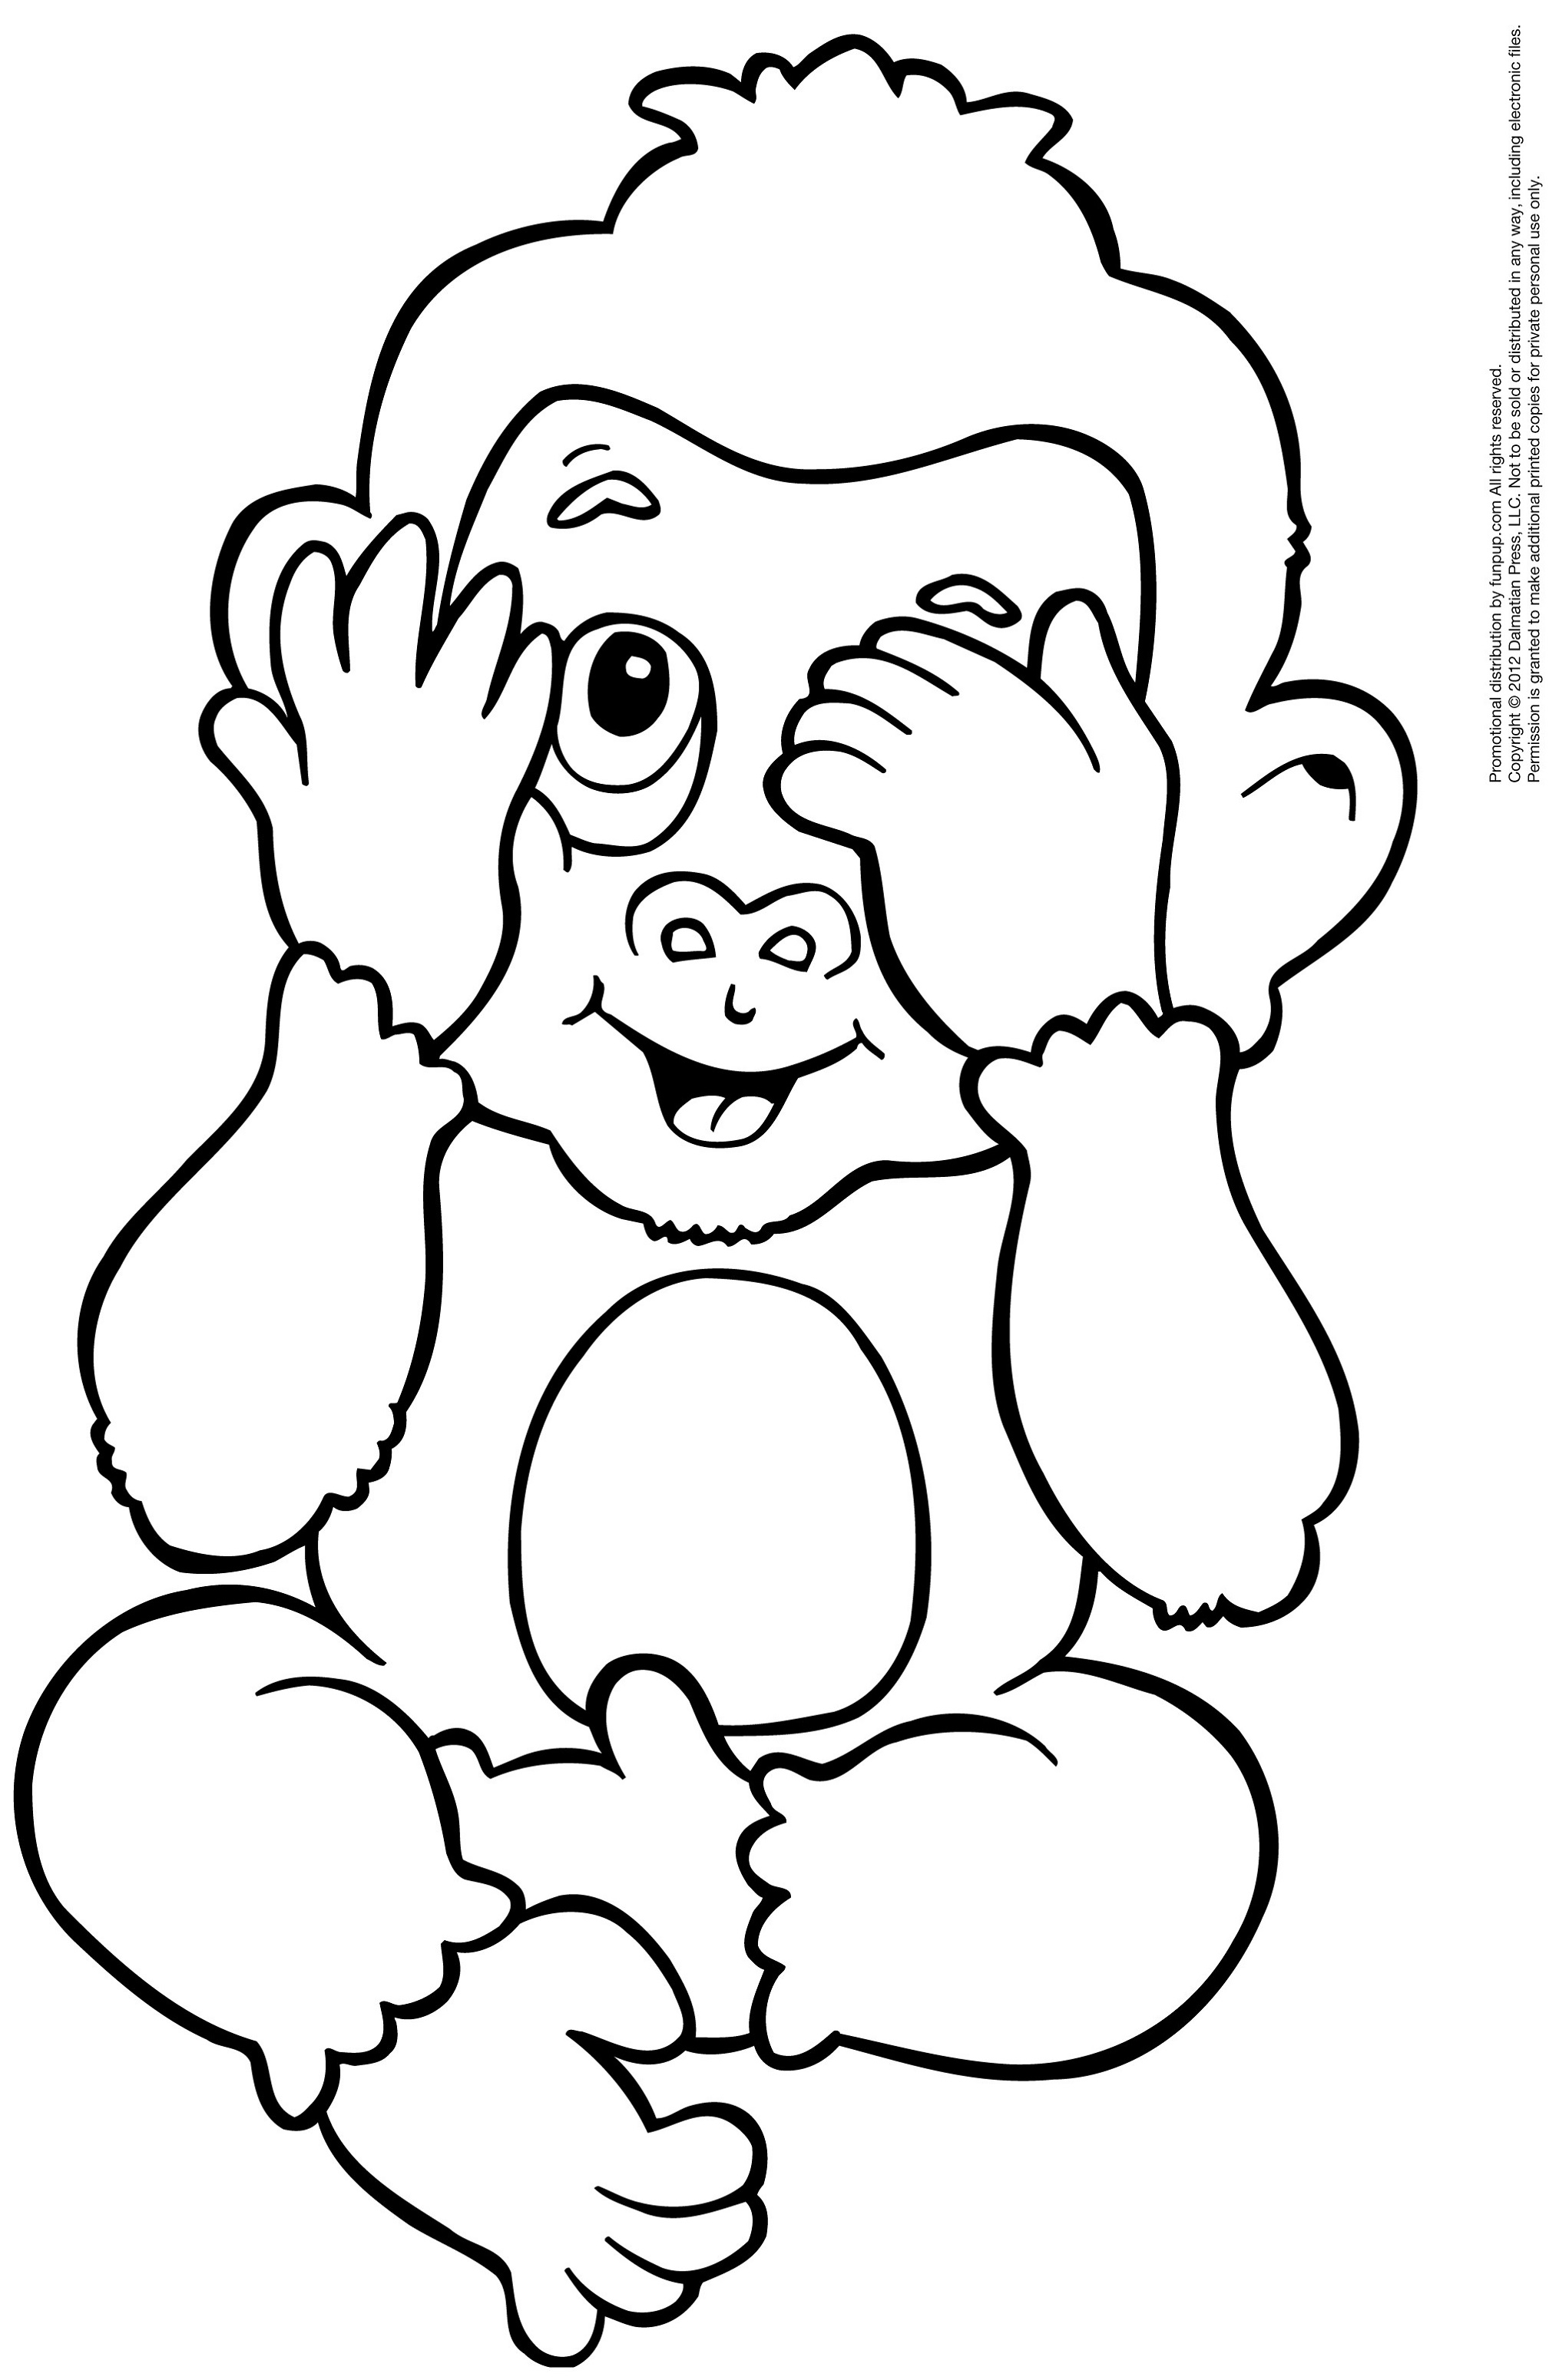 coloring pic of monkey monkeys to color for children monkeys kids coloring pages coloring monkey pic of